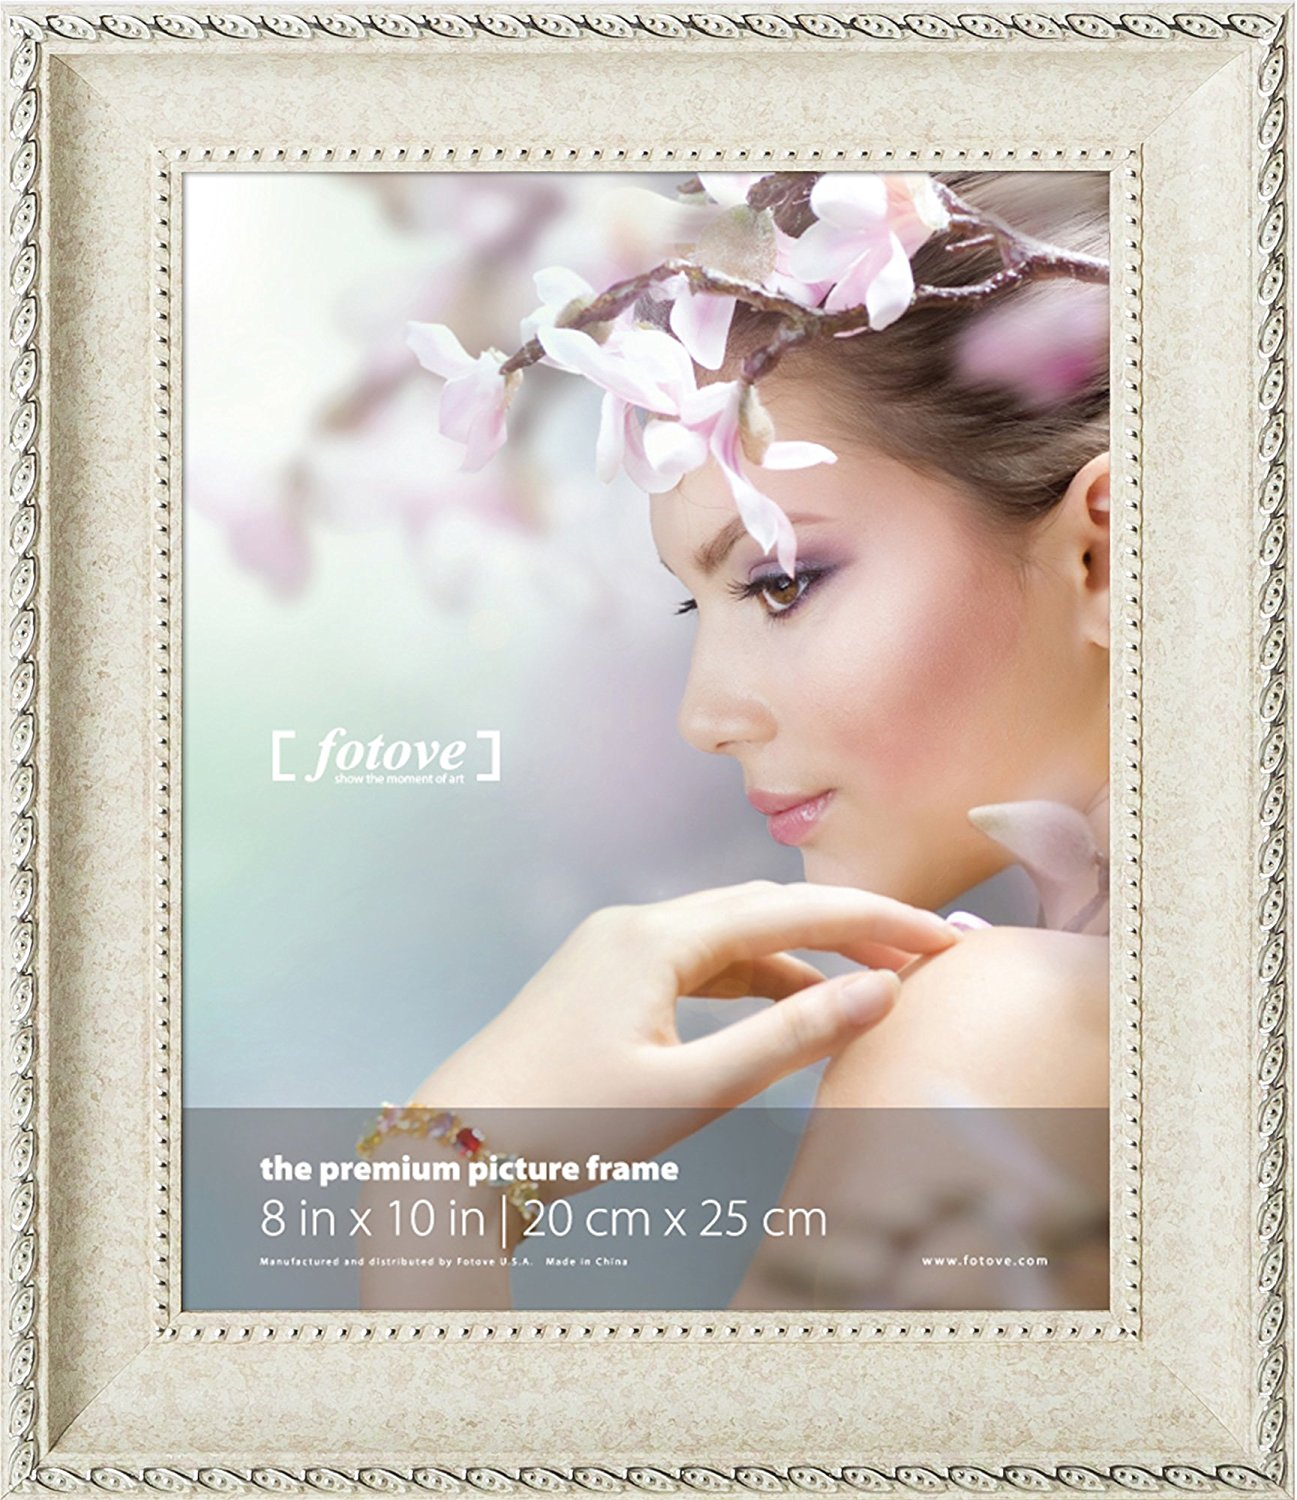 Cheap 19 X 13 Frame, find 19 X 13 Frame deals on line at Alibaba.com